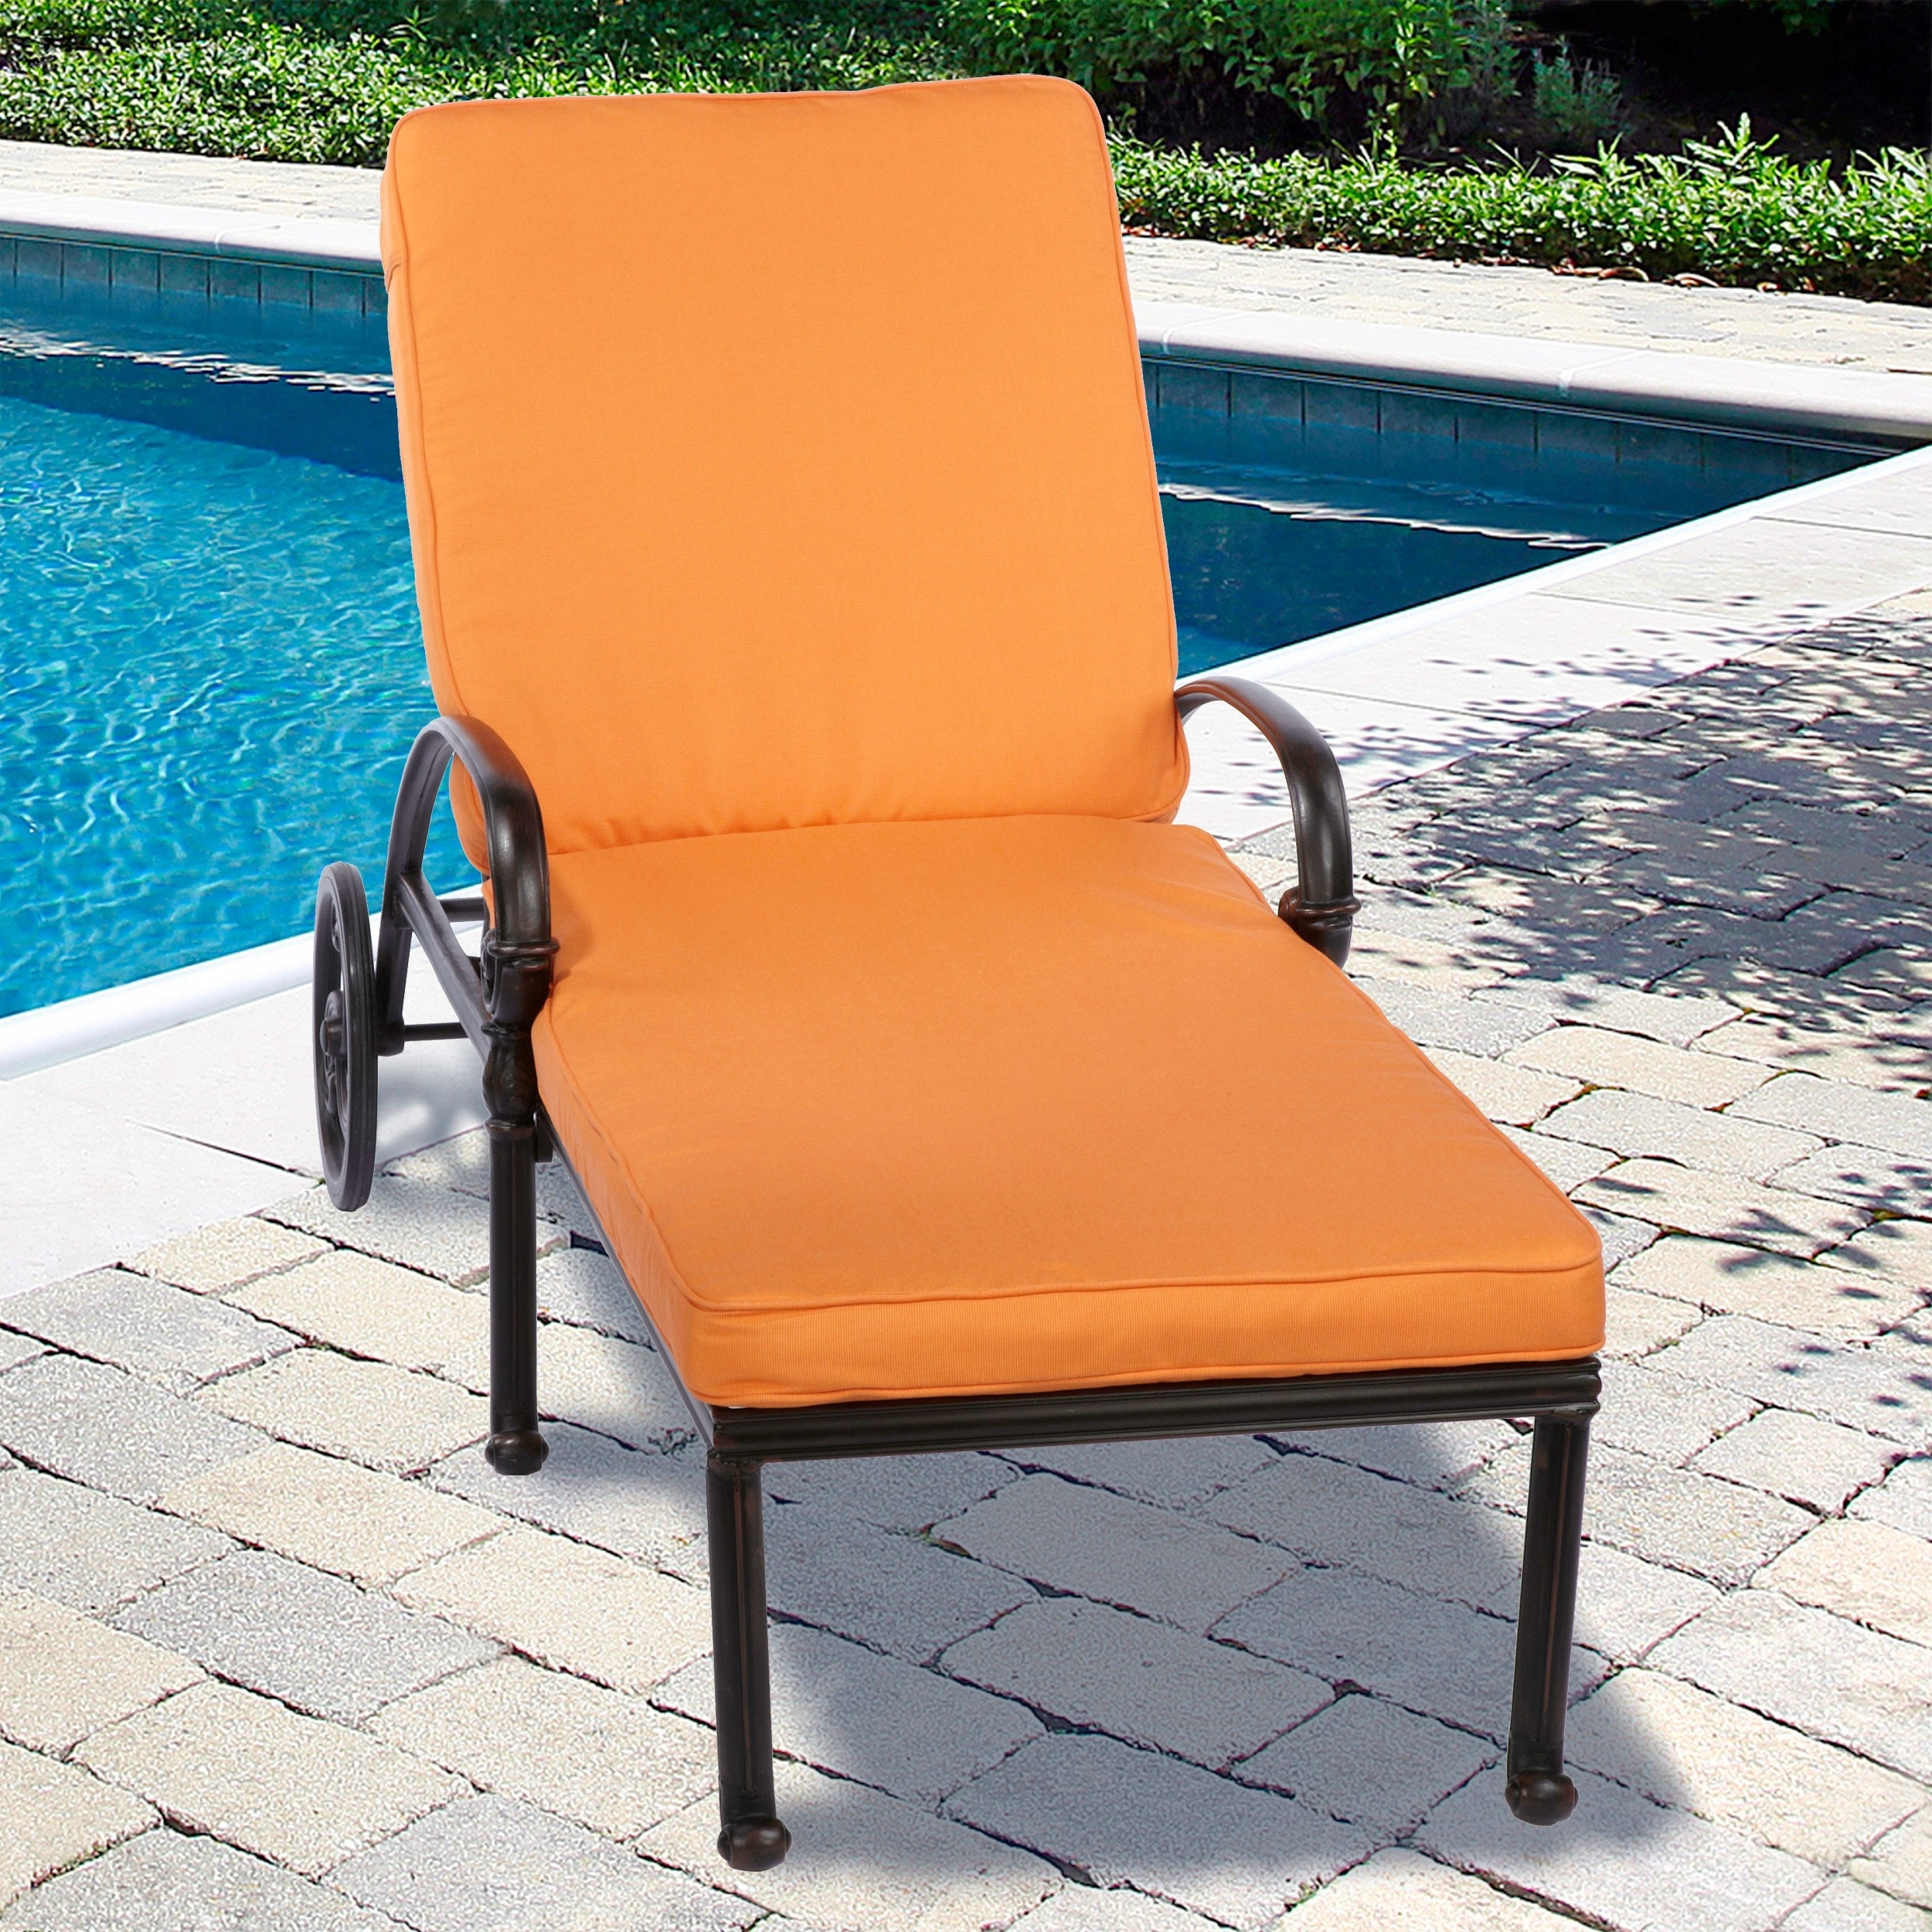 Outdoor Cushions For Chaise Lounge Chairs For Trendy Convertible Chair : Outdoor Furniture Cushions Clearance Outside (View 14 of 15)